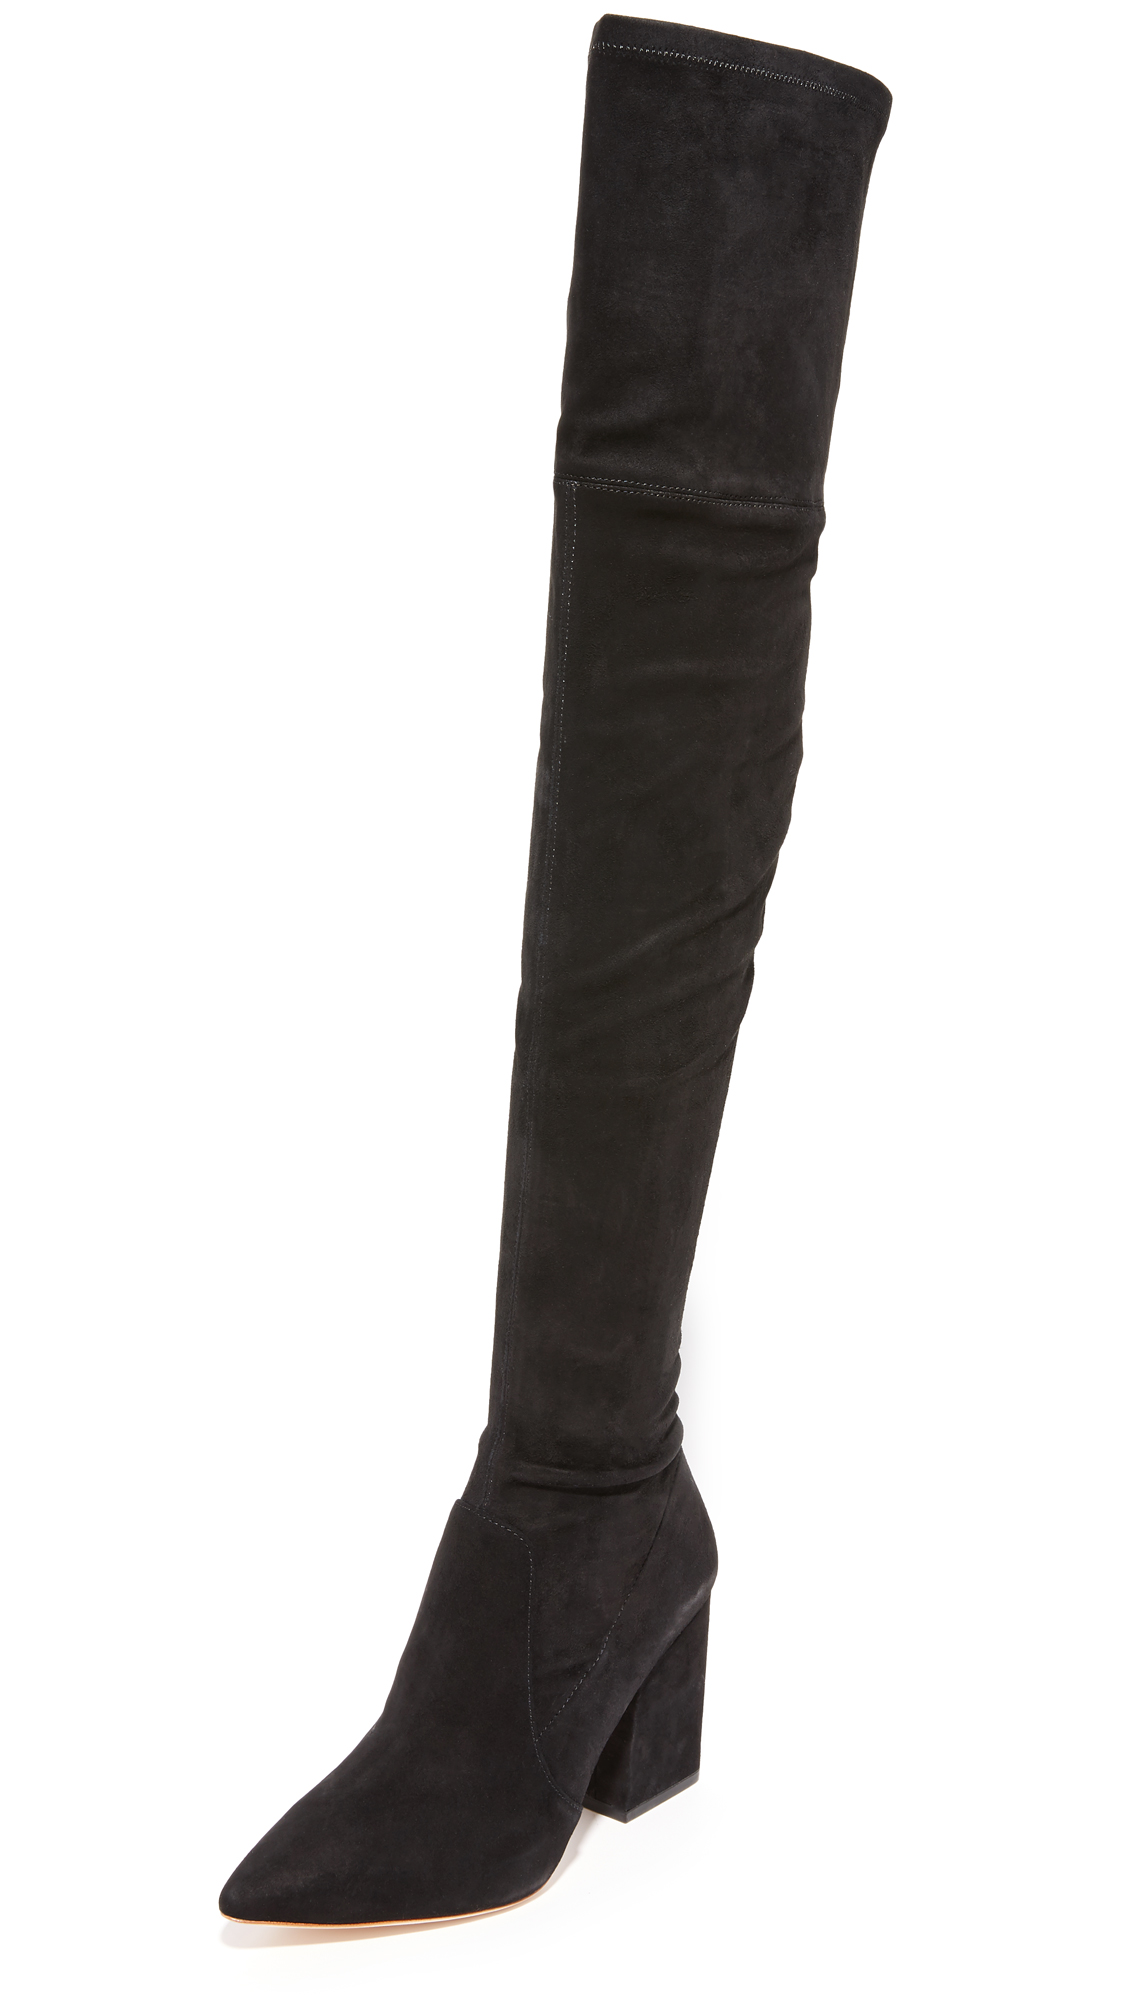 Loeffler Randall Ophelia Over The Knee Boots - Black